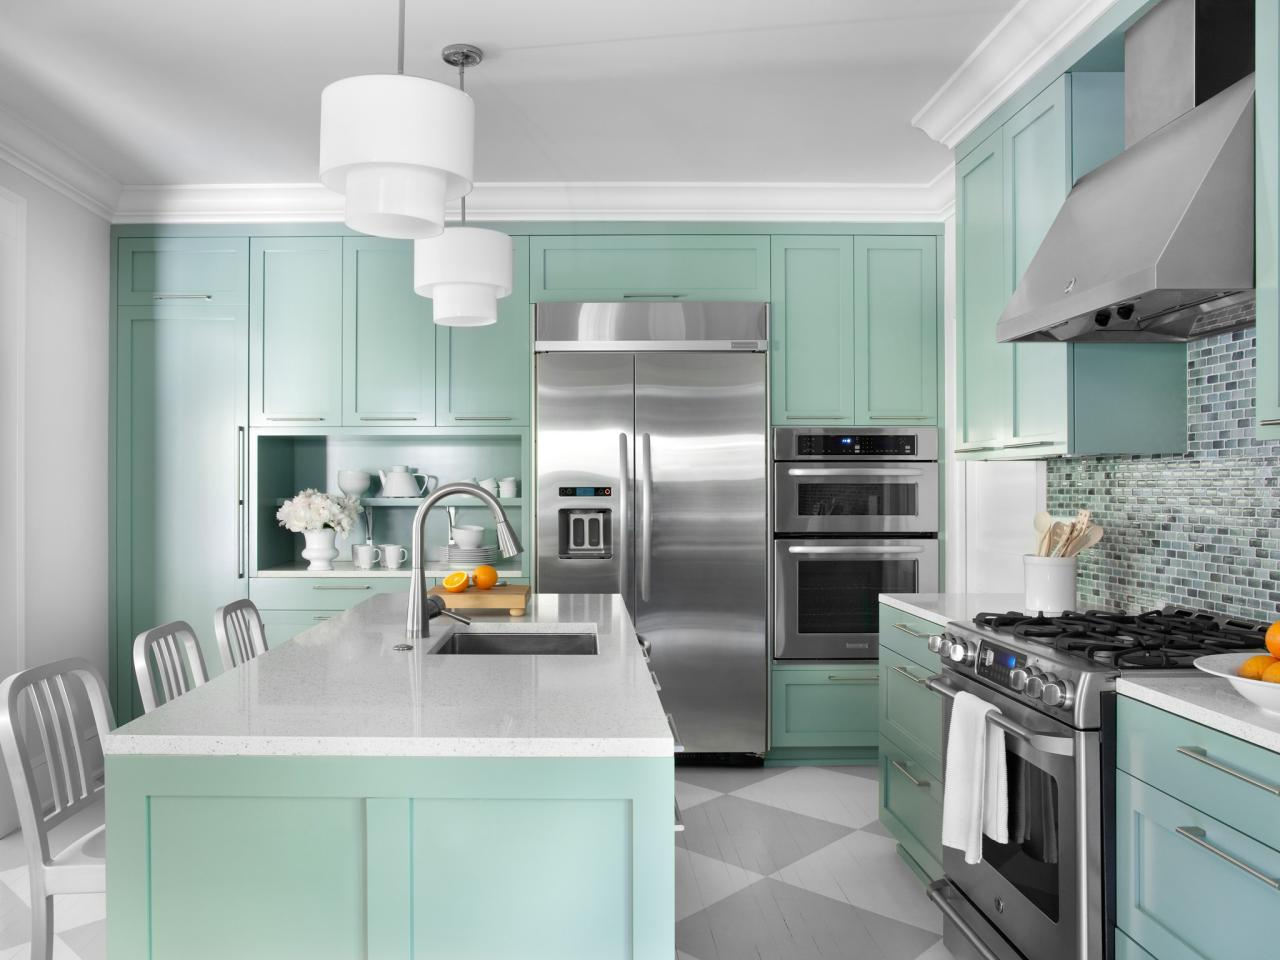 Modern Kitchen Green color ideas for painting kitchen cabinets + hgtv pictures | hgtv